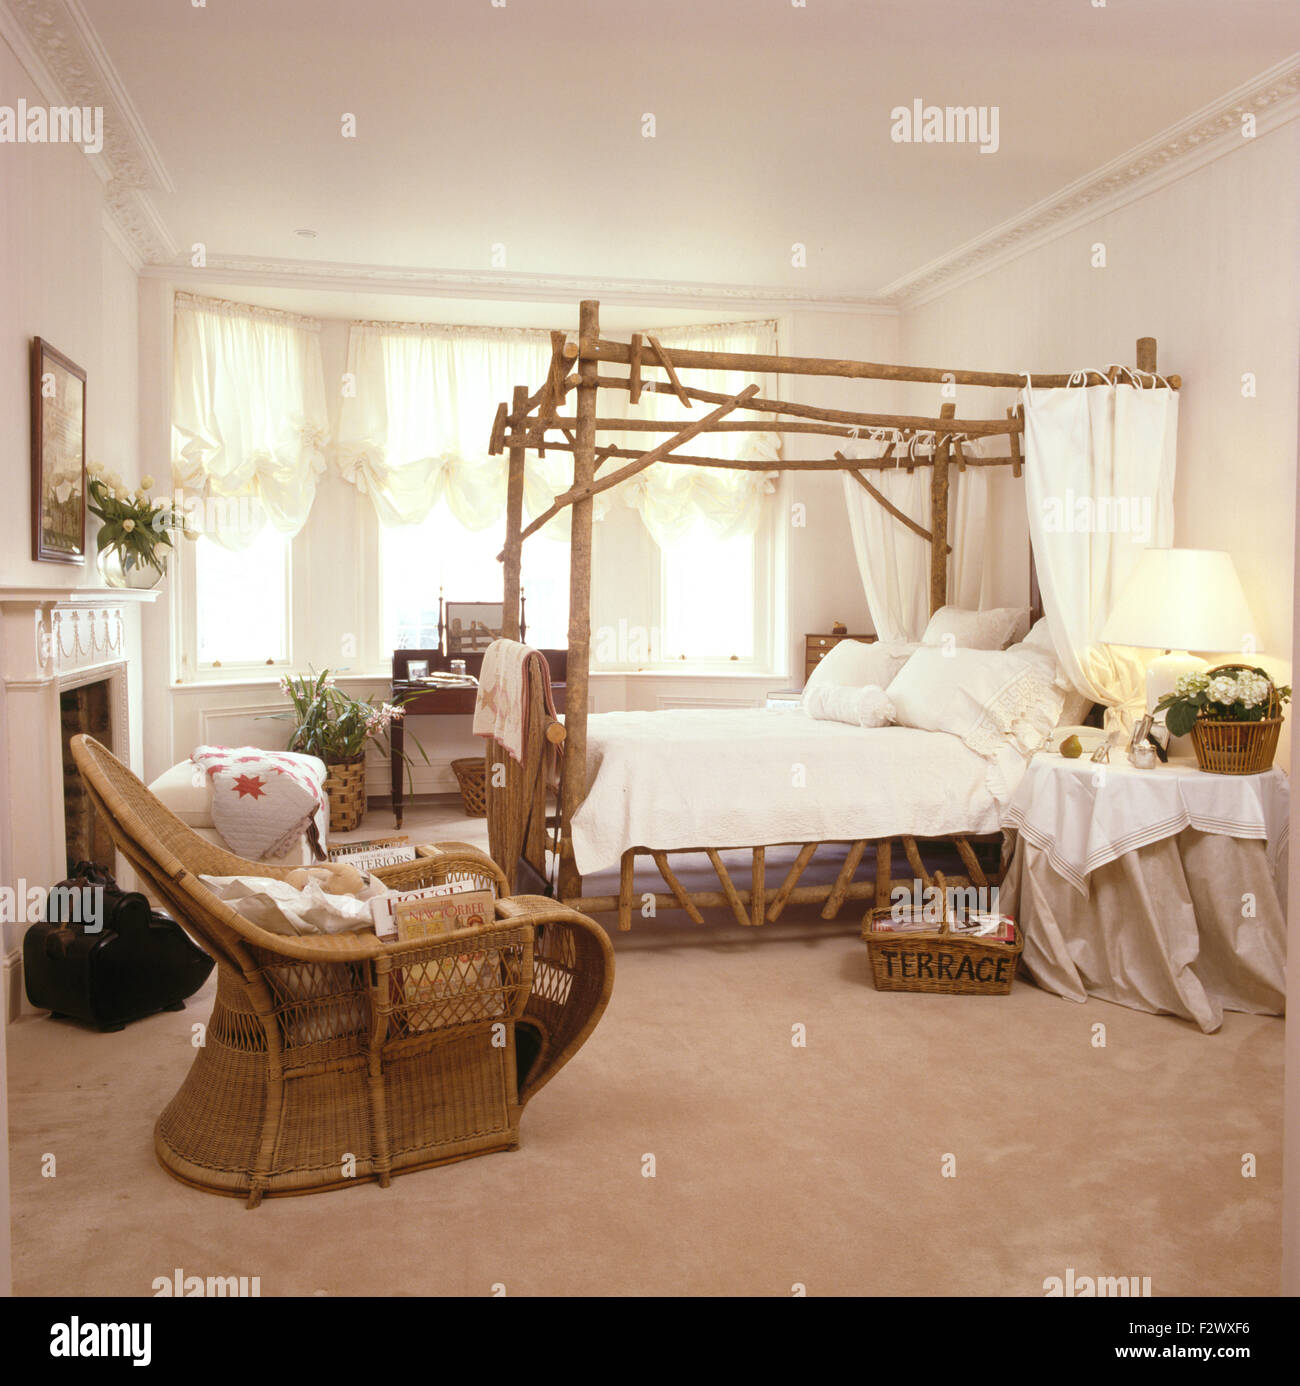 Cane Chair In Nineties Bedroom With Rustic Wooden Four Poster Bed